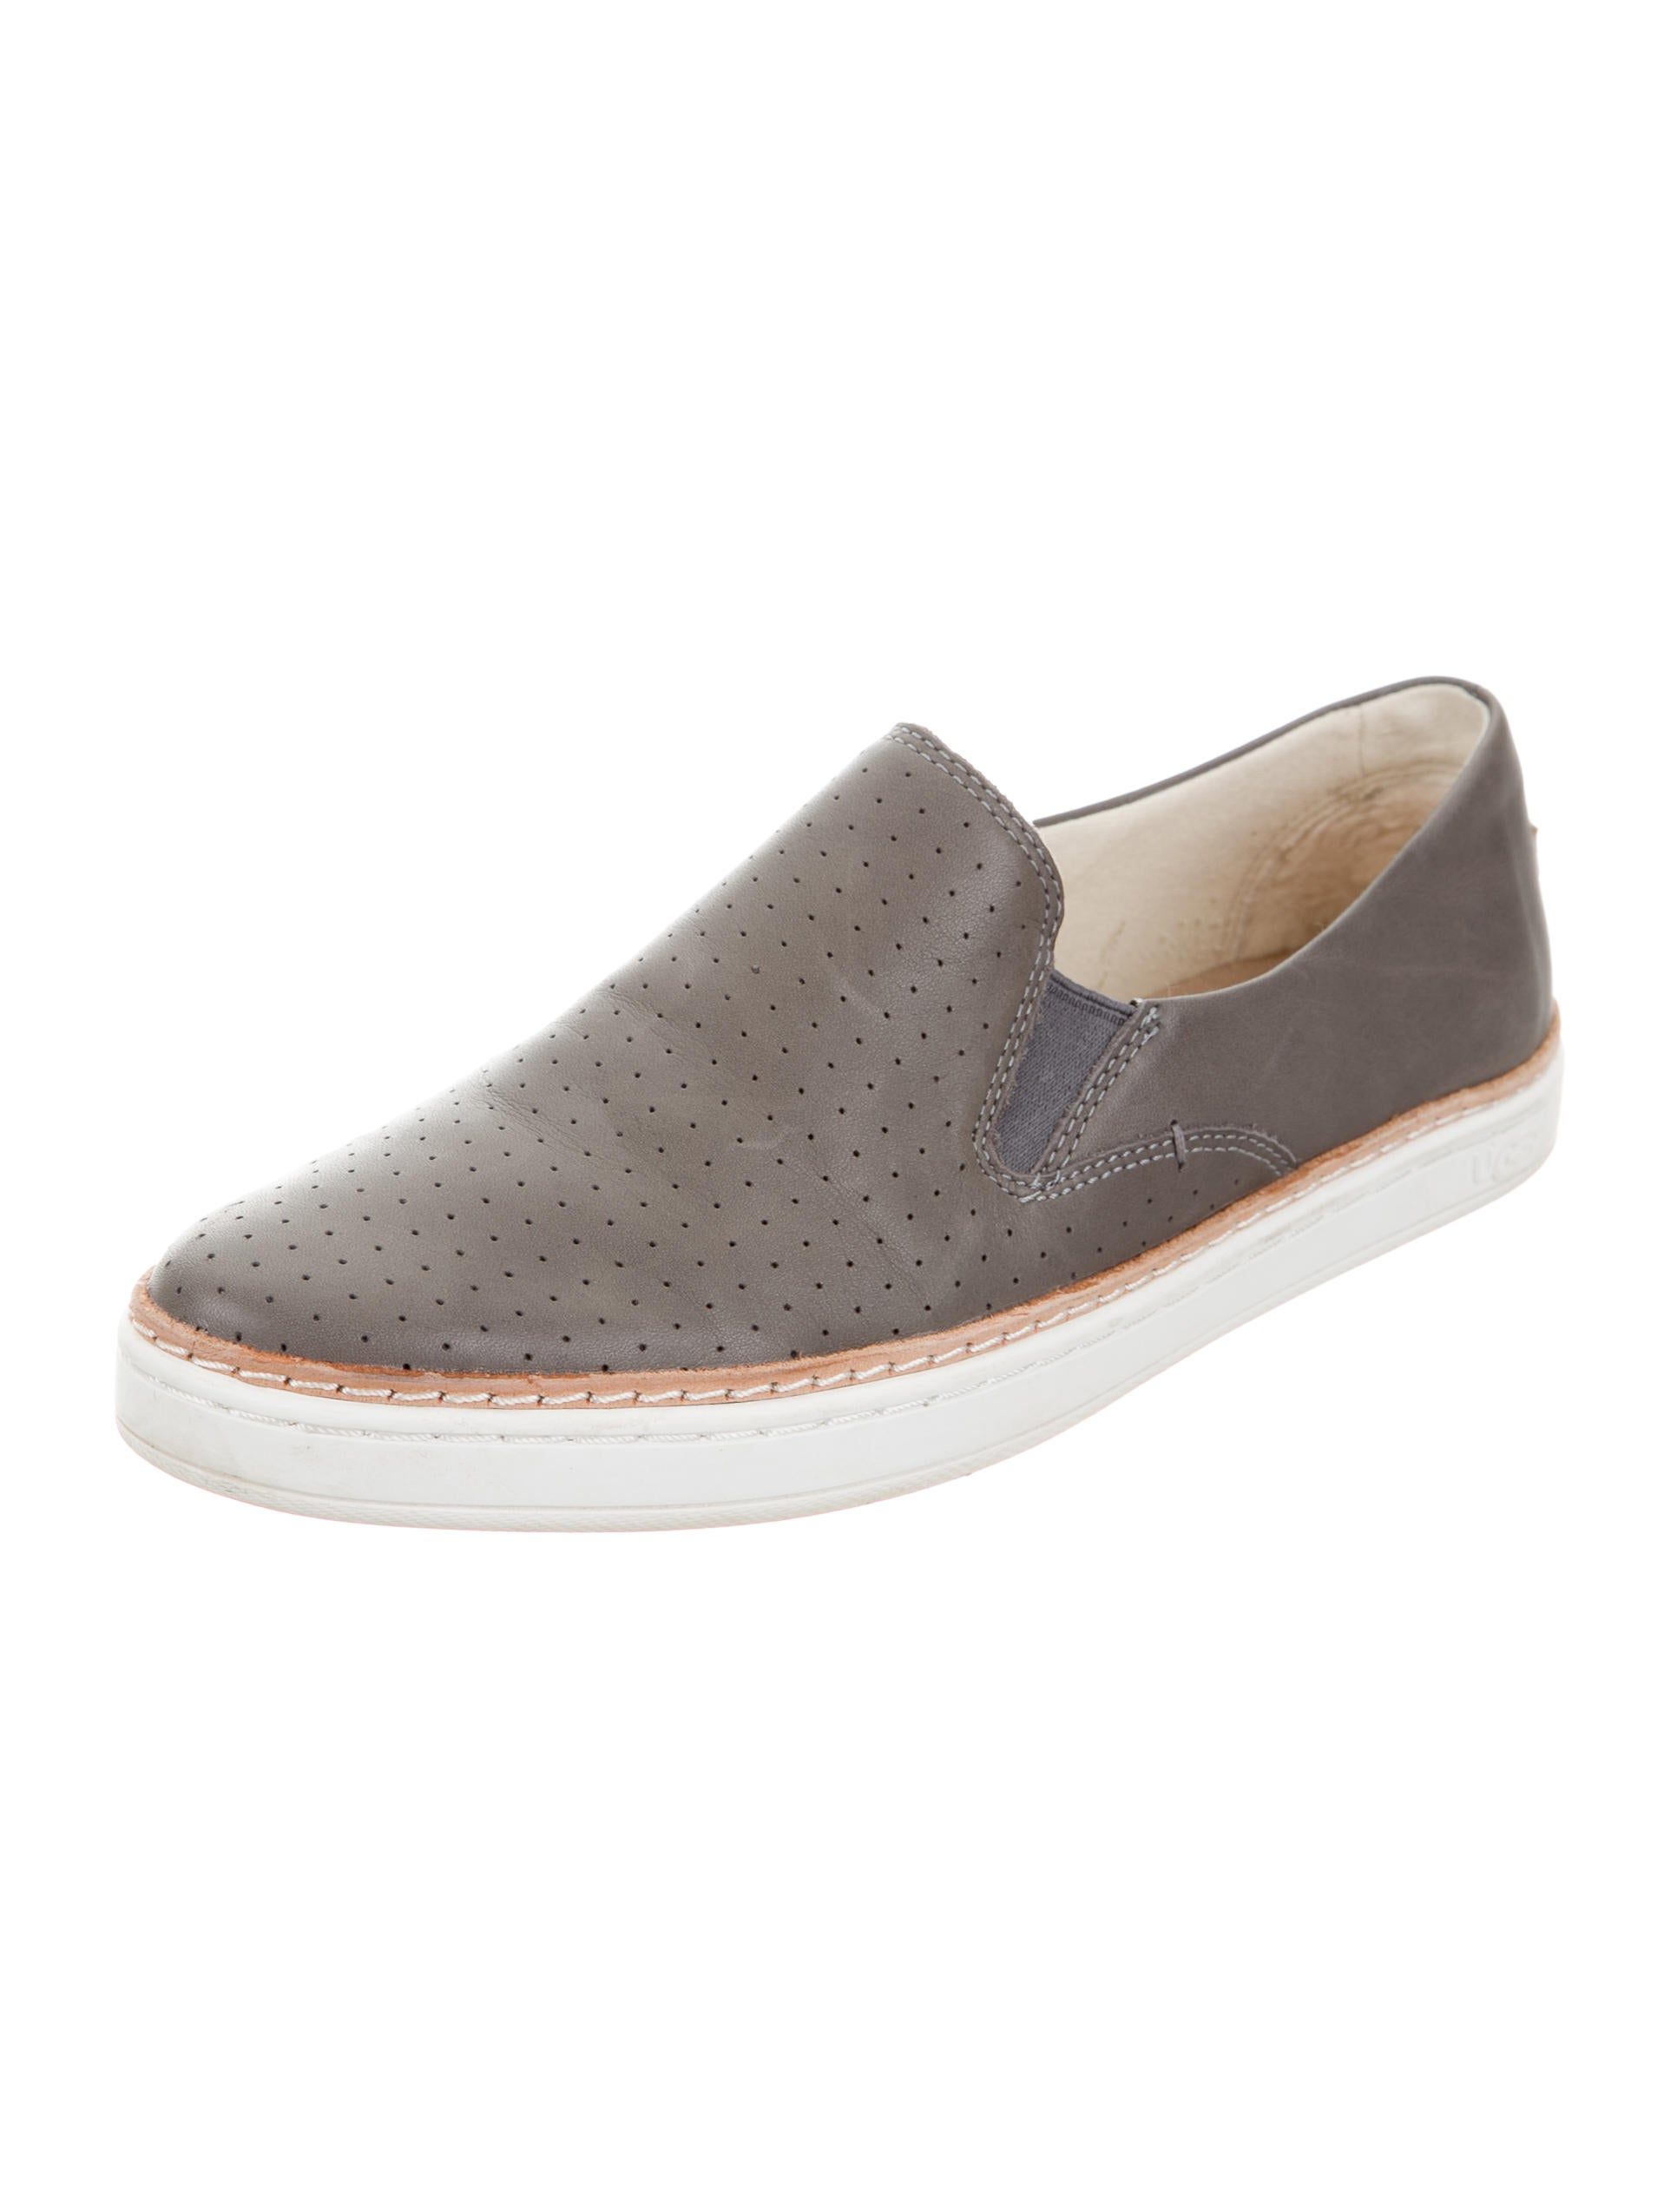 Ugg Australia Perforated Leather Slip On Sneakers Shoes